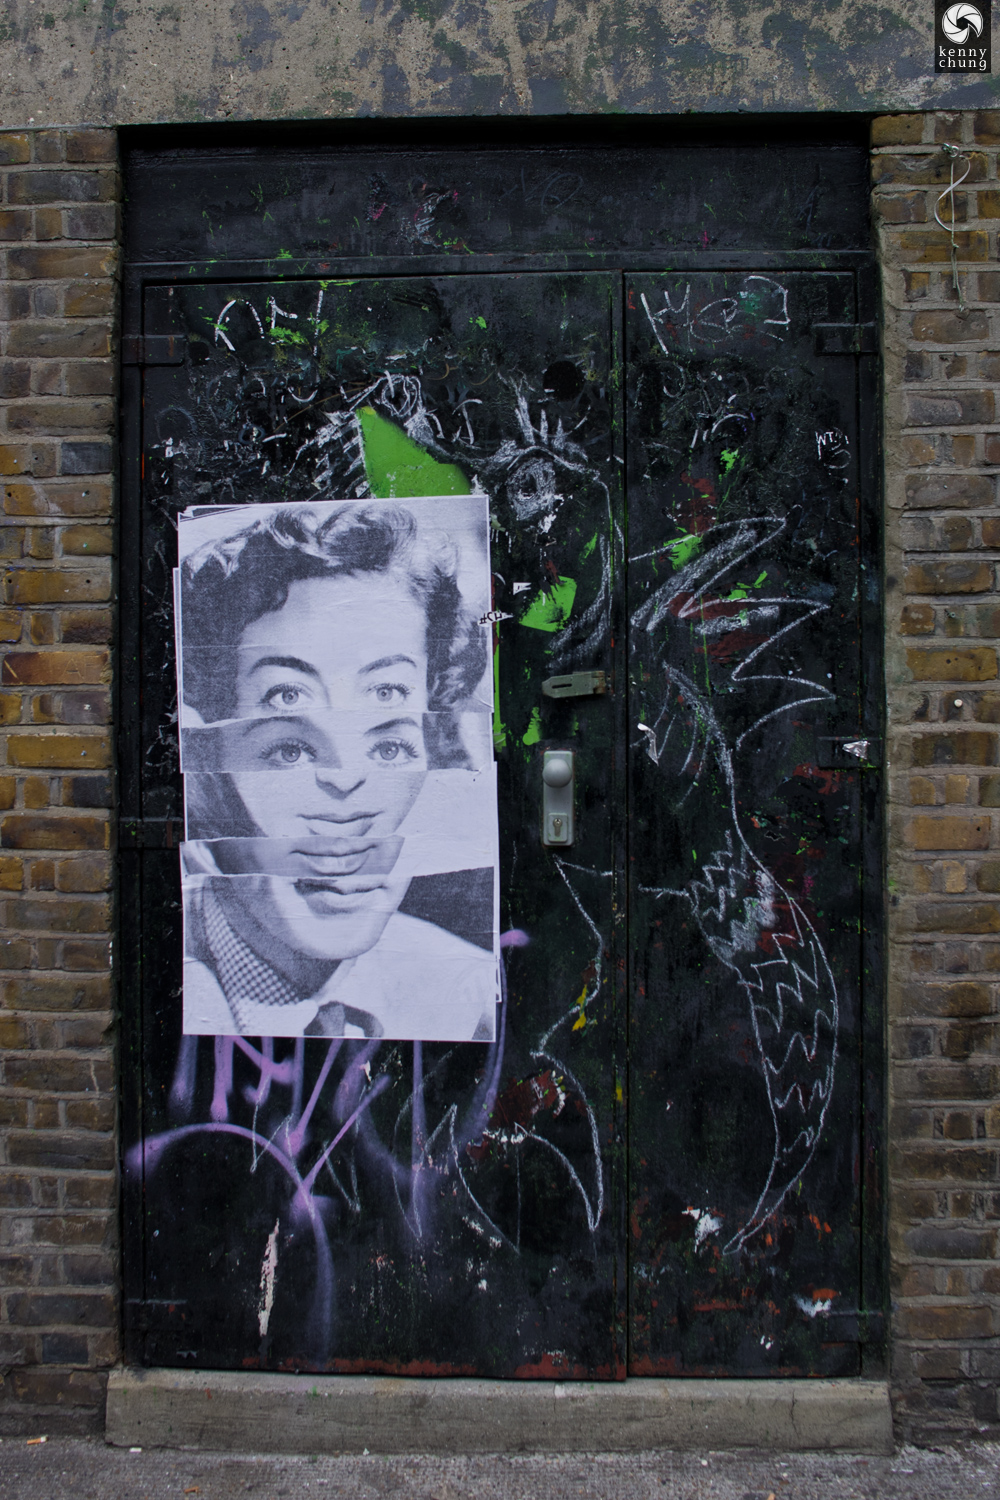 Wheatpaste art on a door in Shoreditch, London